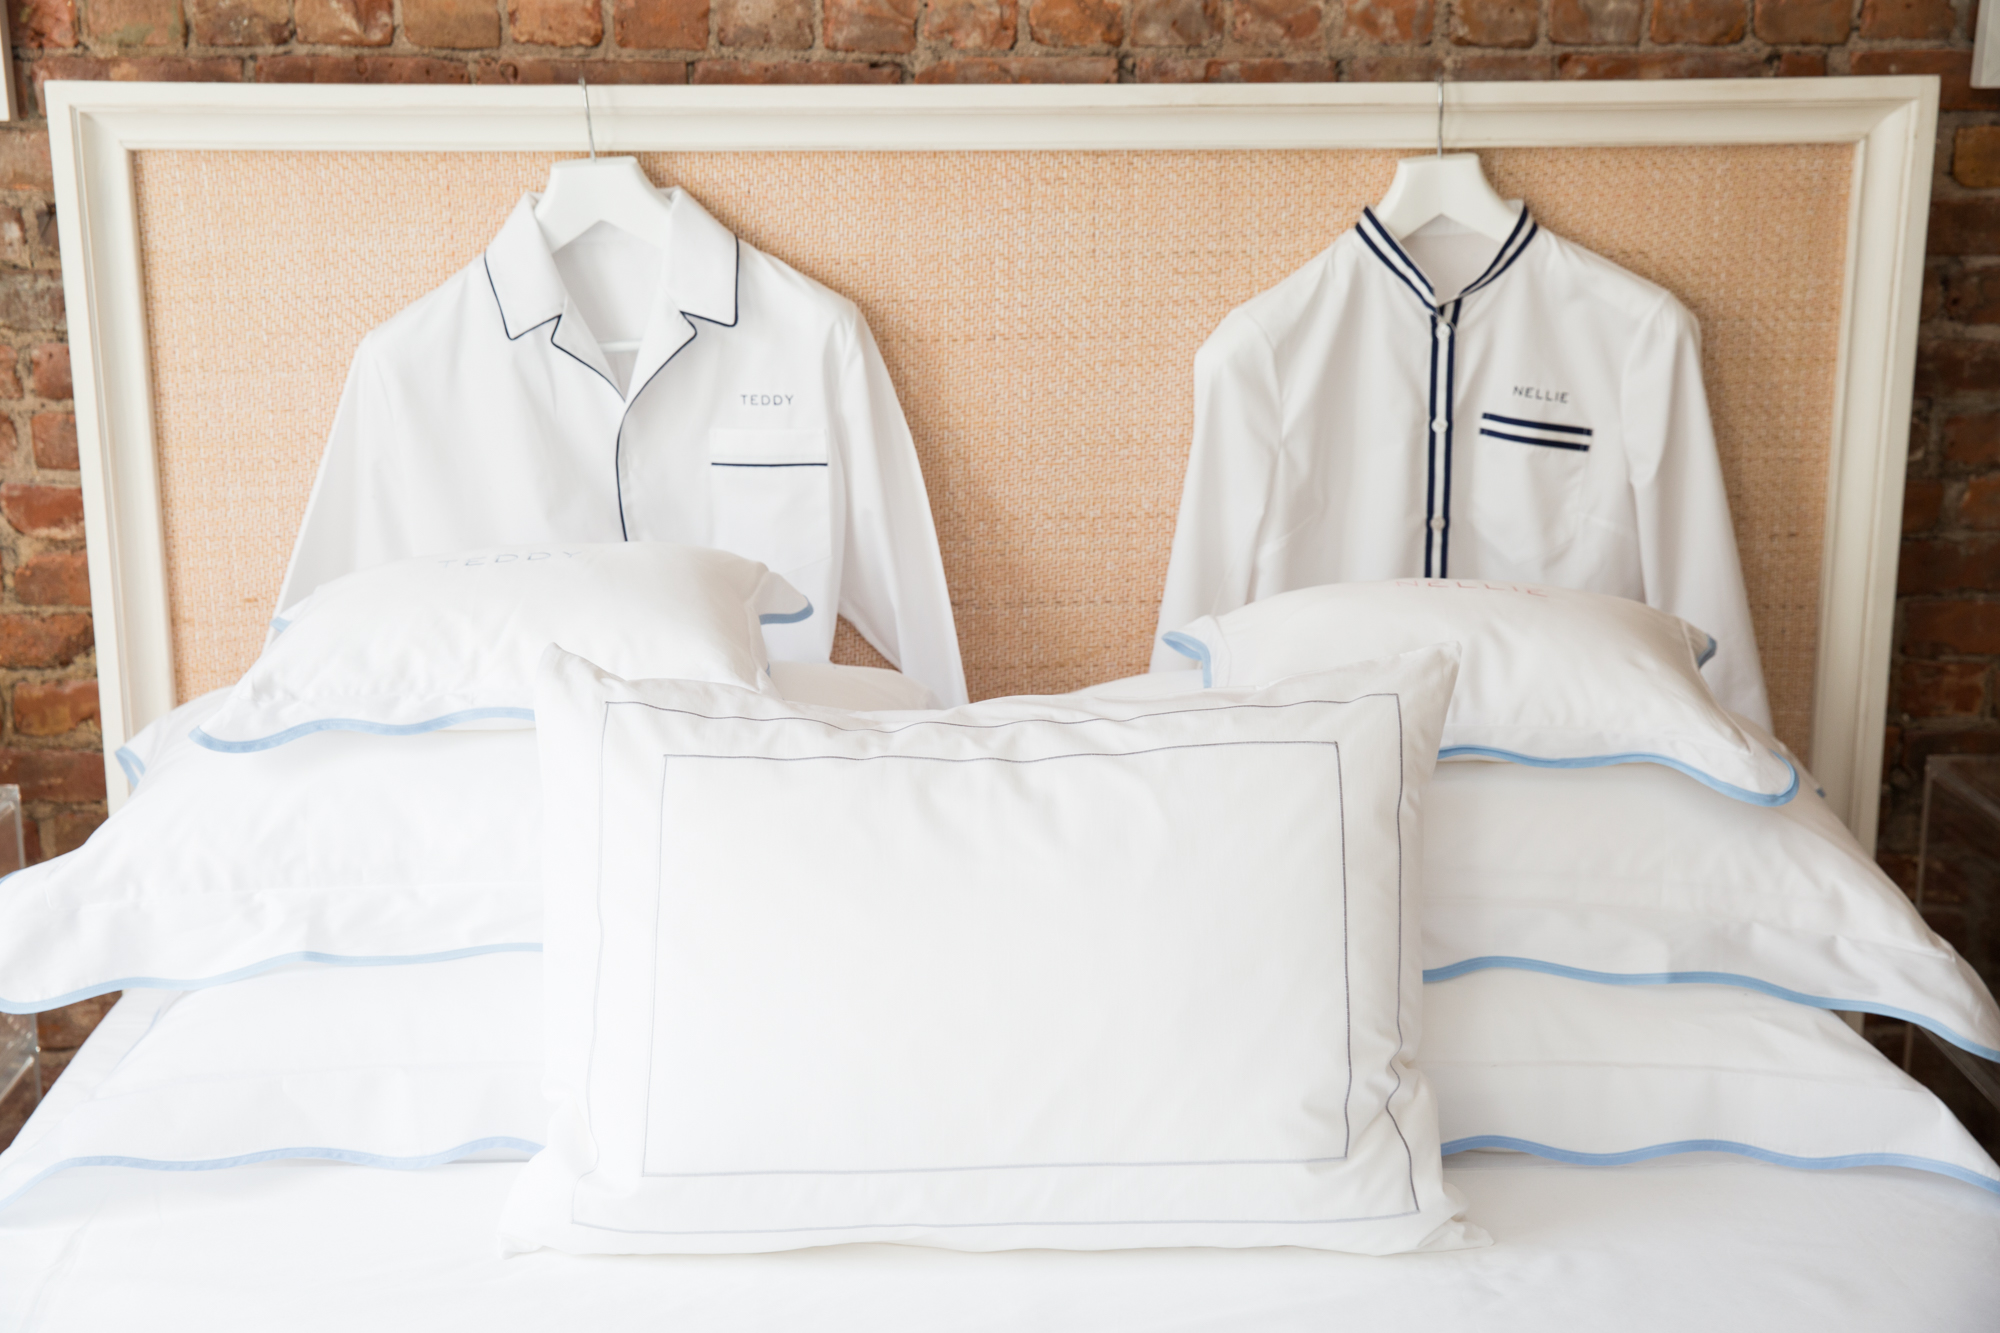 How to Become a Bedding Magnate